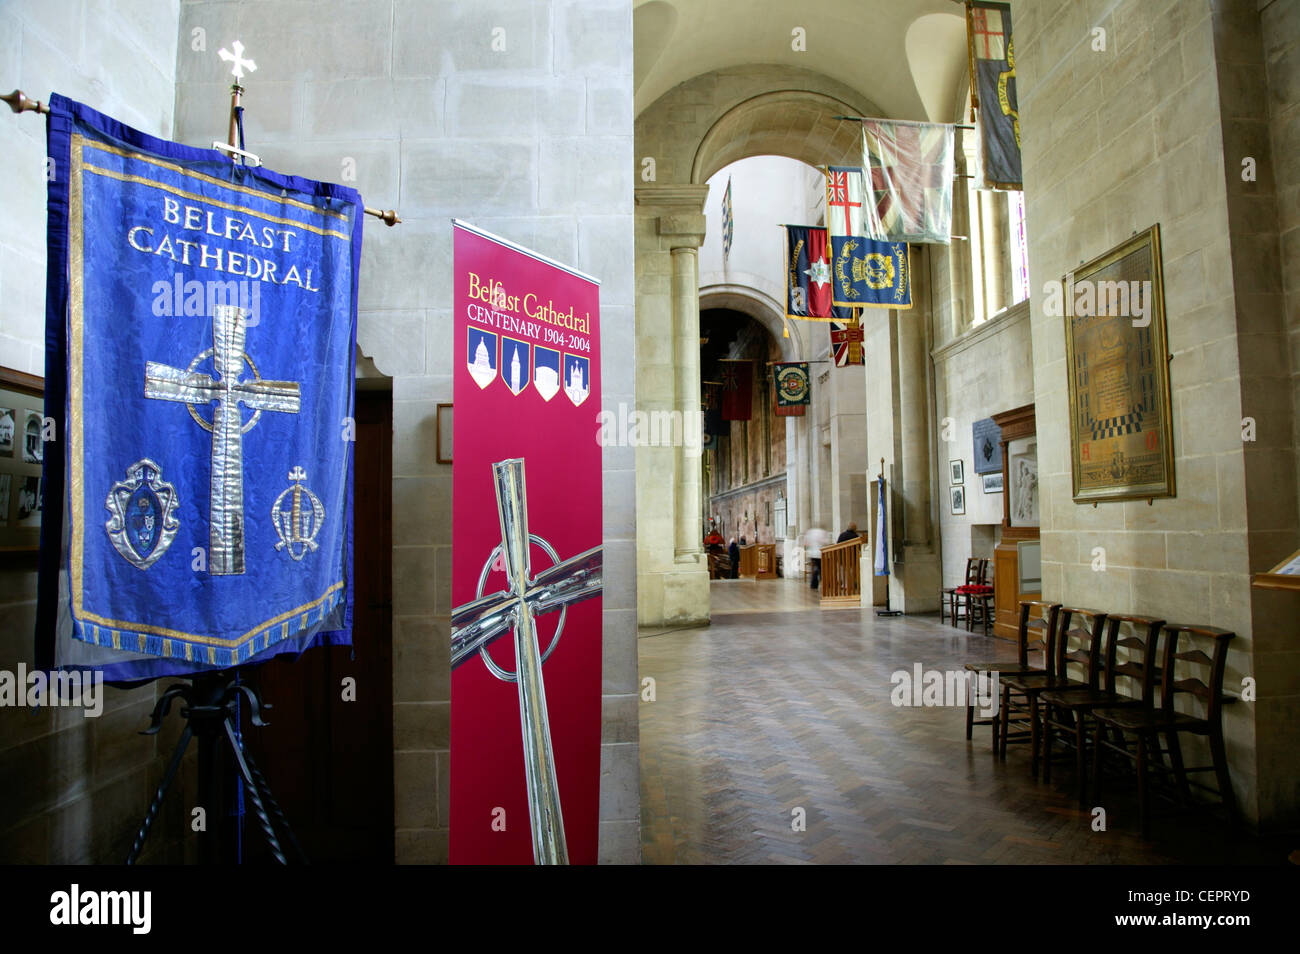 Interior view of the grand Belfast Cathedral. - Stock Image